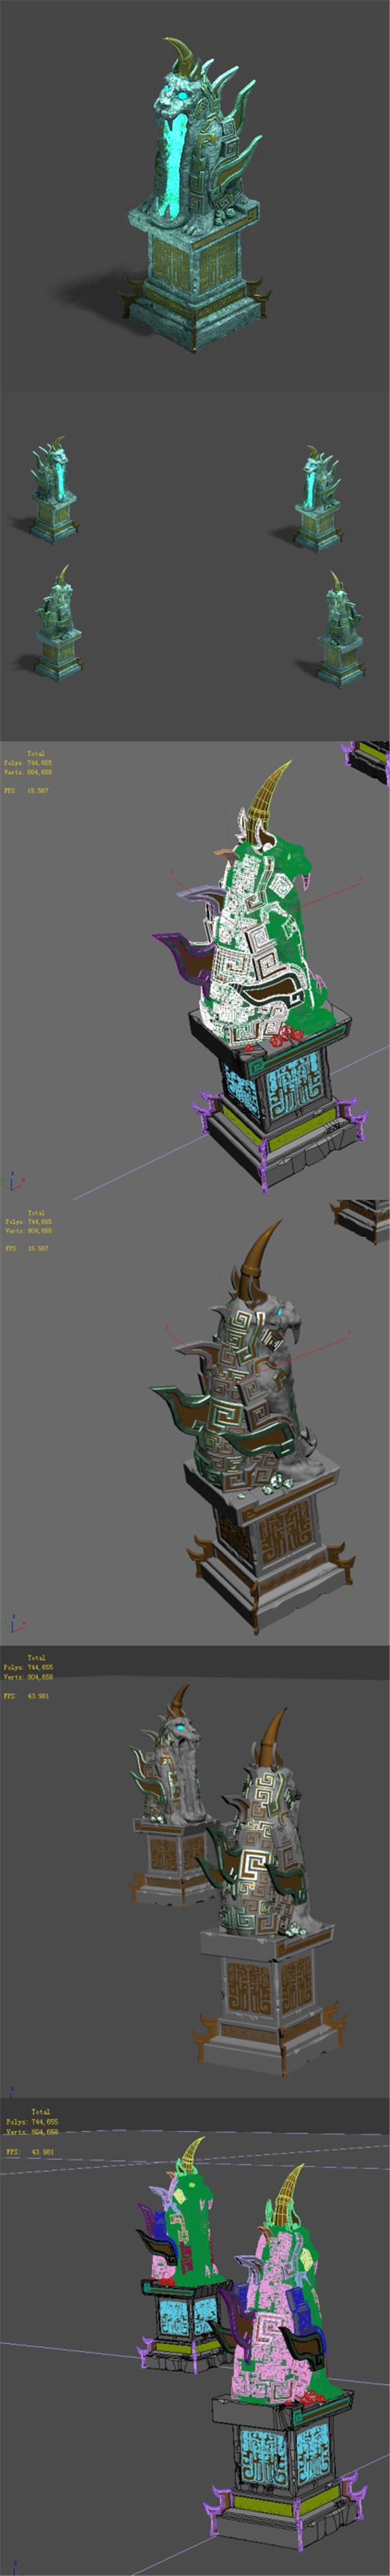 Dungeon - Statue - 3DOcean Item for Sale